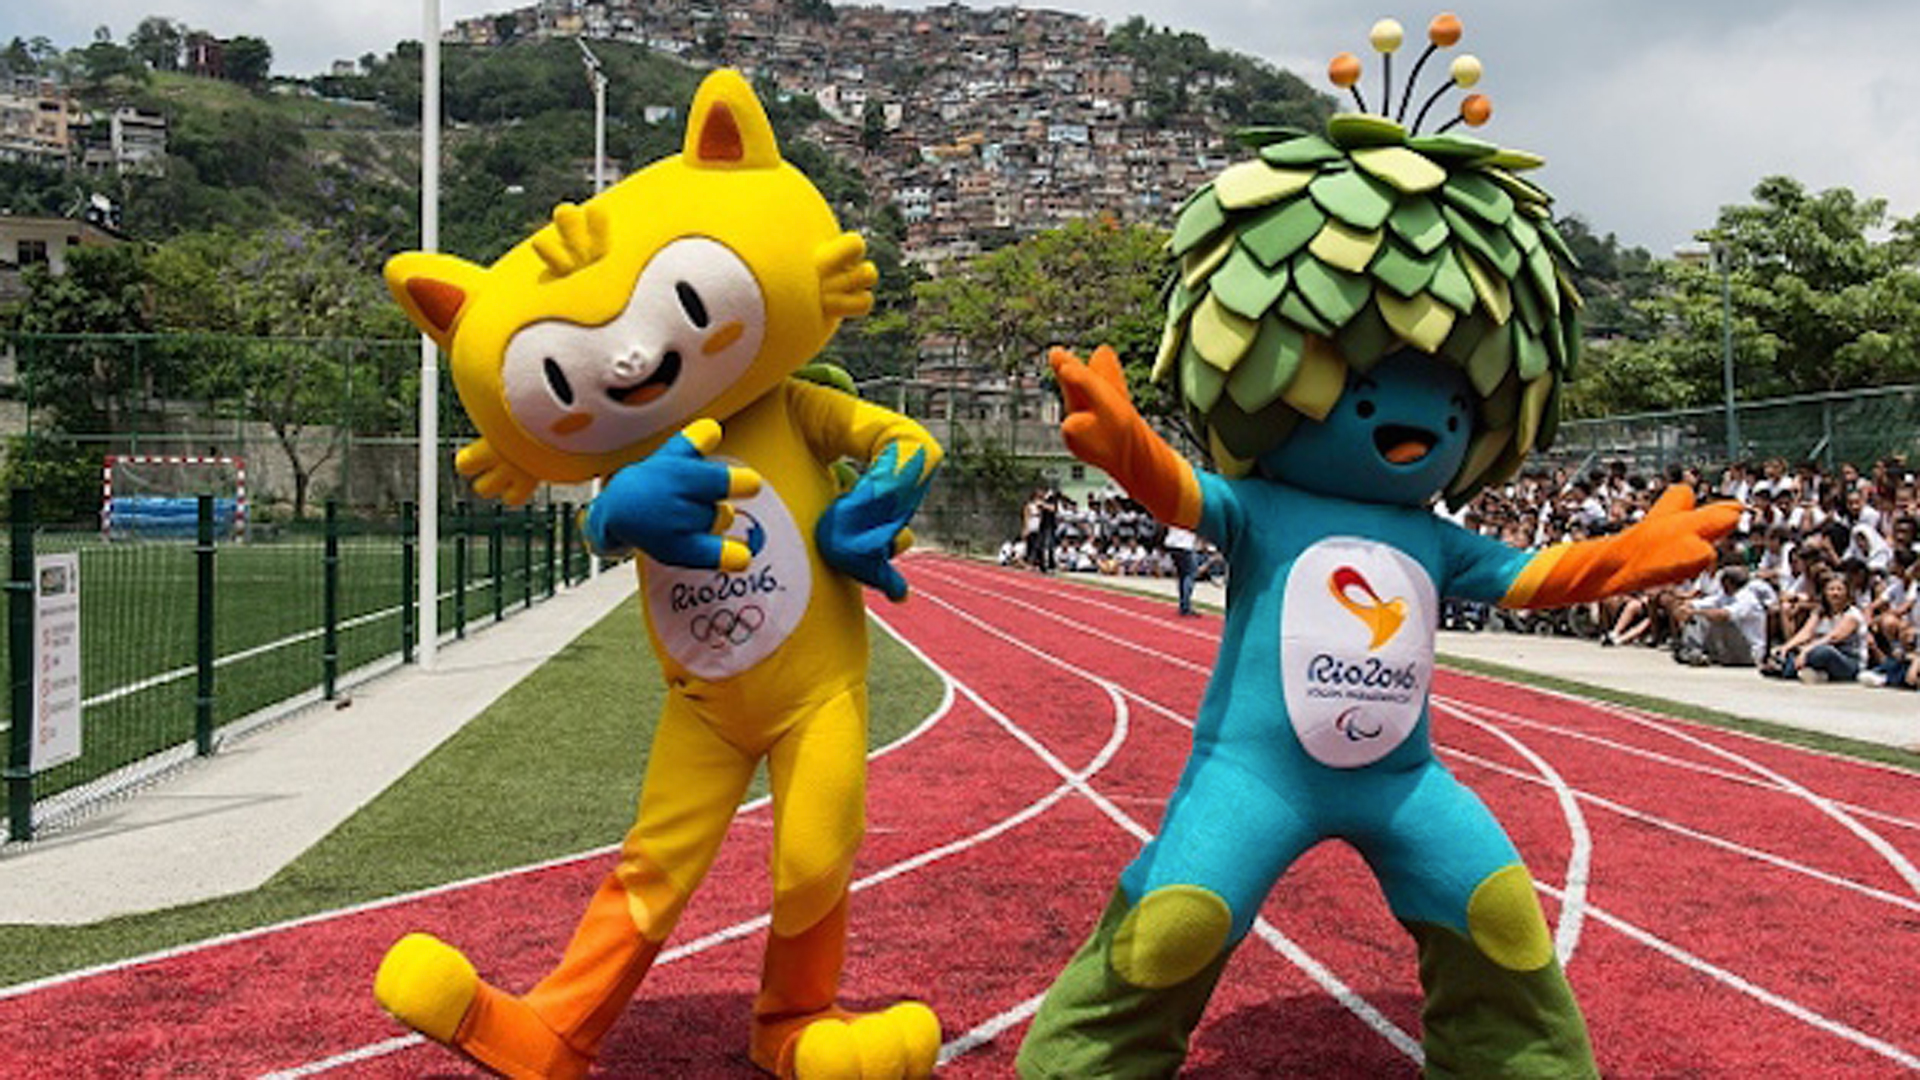 27b56b4f233 Meet the mascots for the 2016 Summer Olympics in Rio